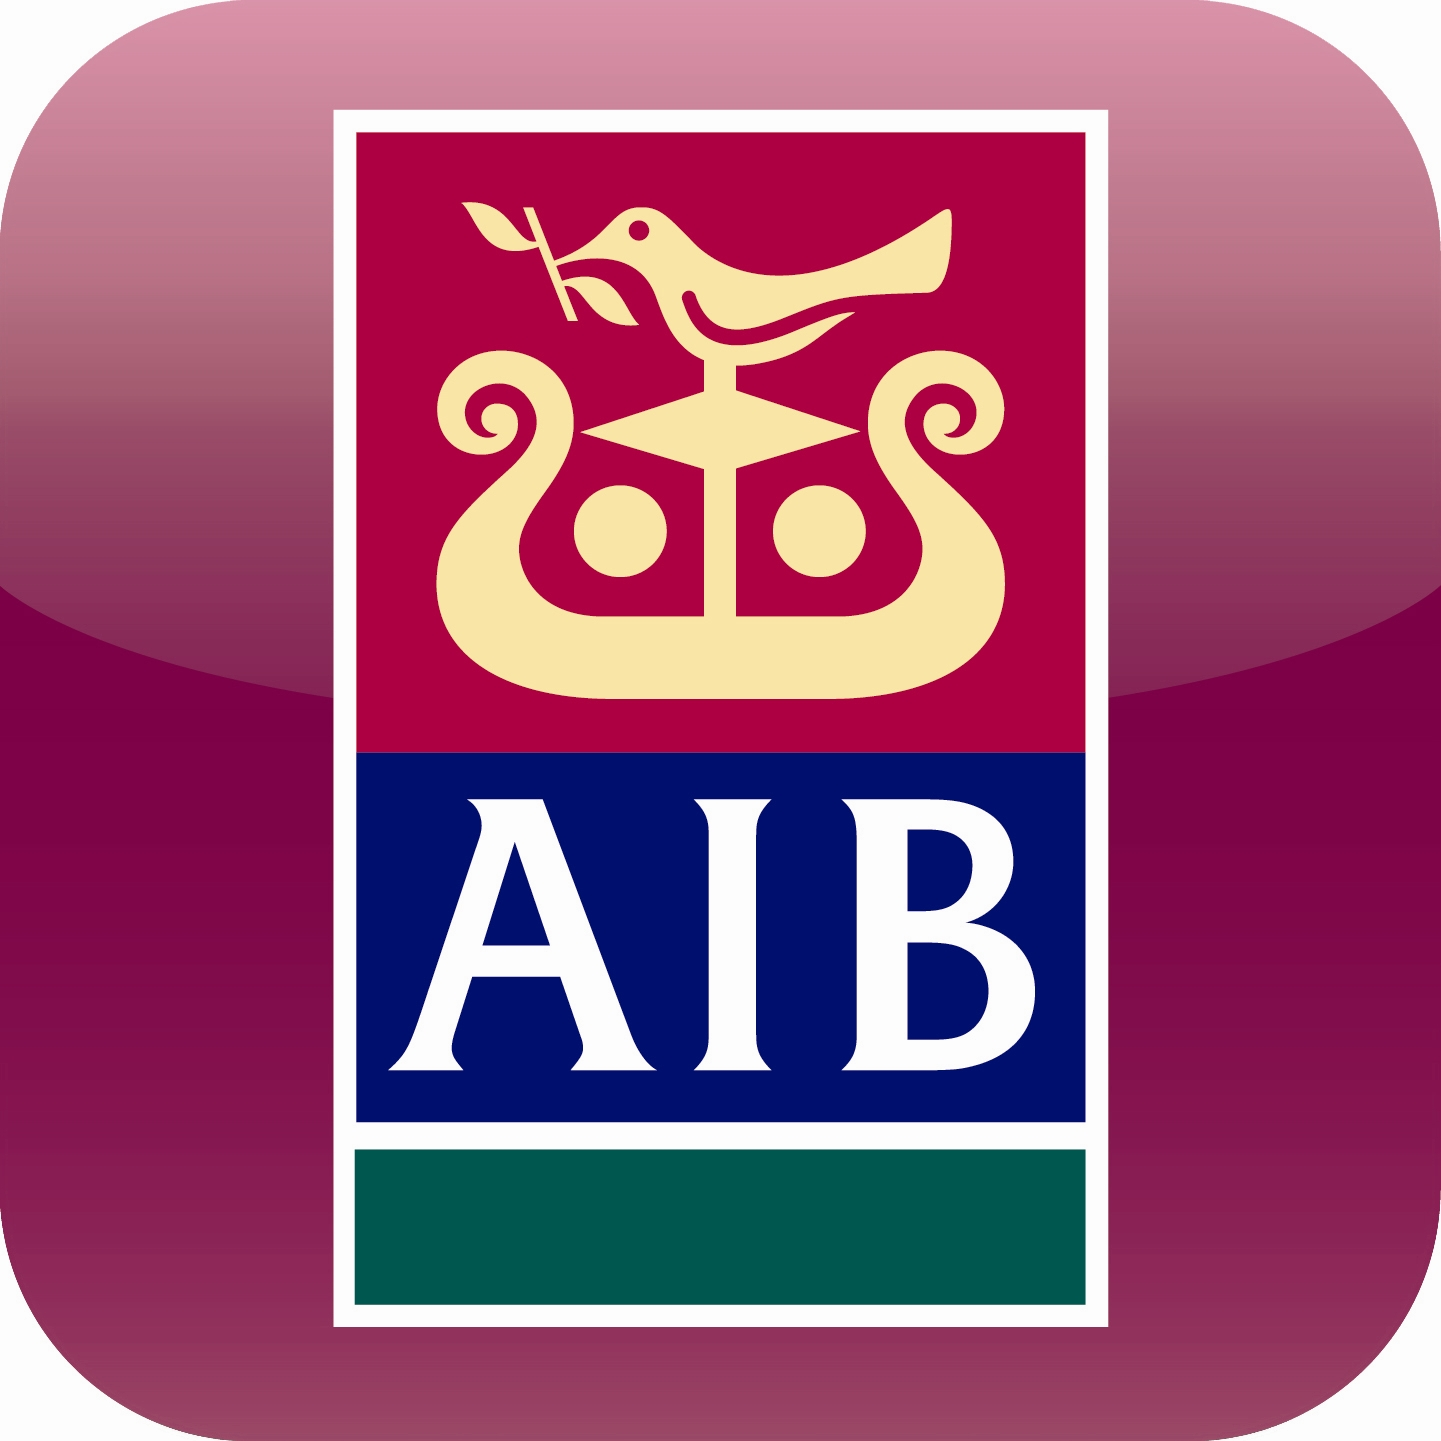 https://3xedigital.com/wp-content/uploads/2016/03/AIB_logo.jpg